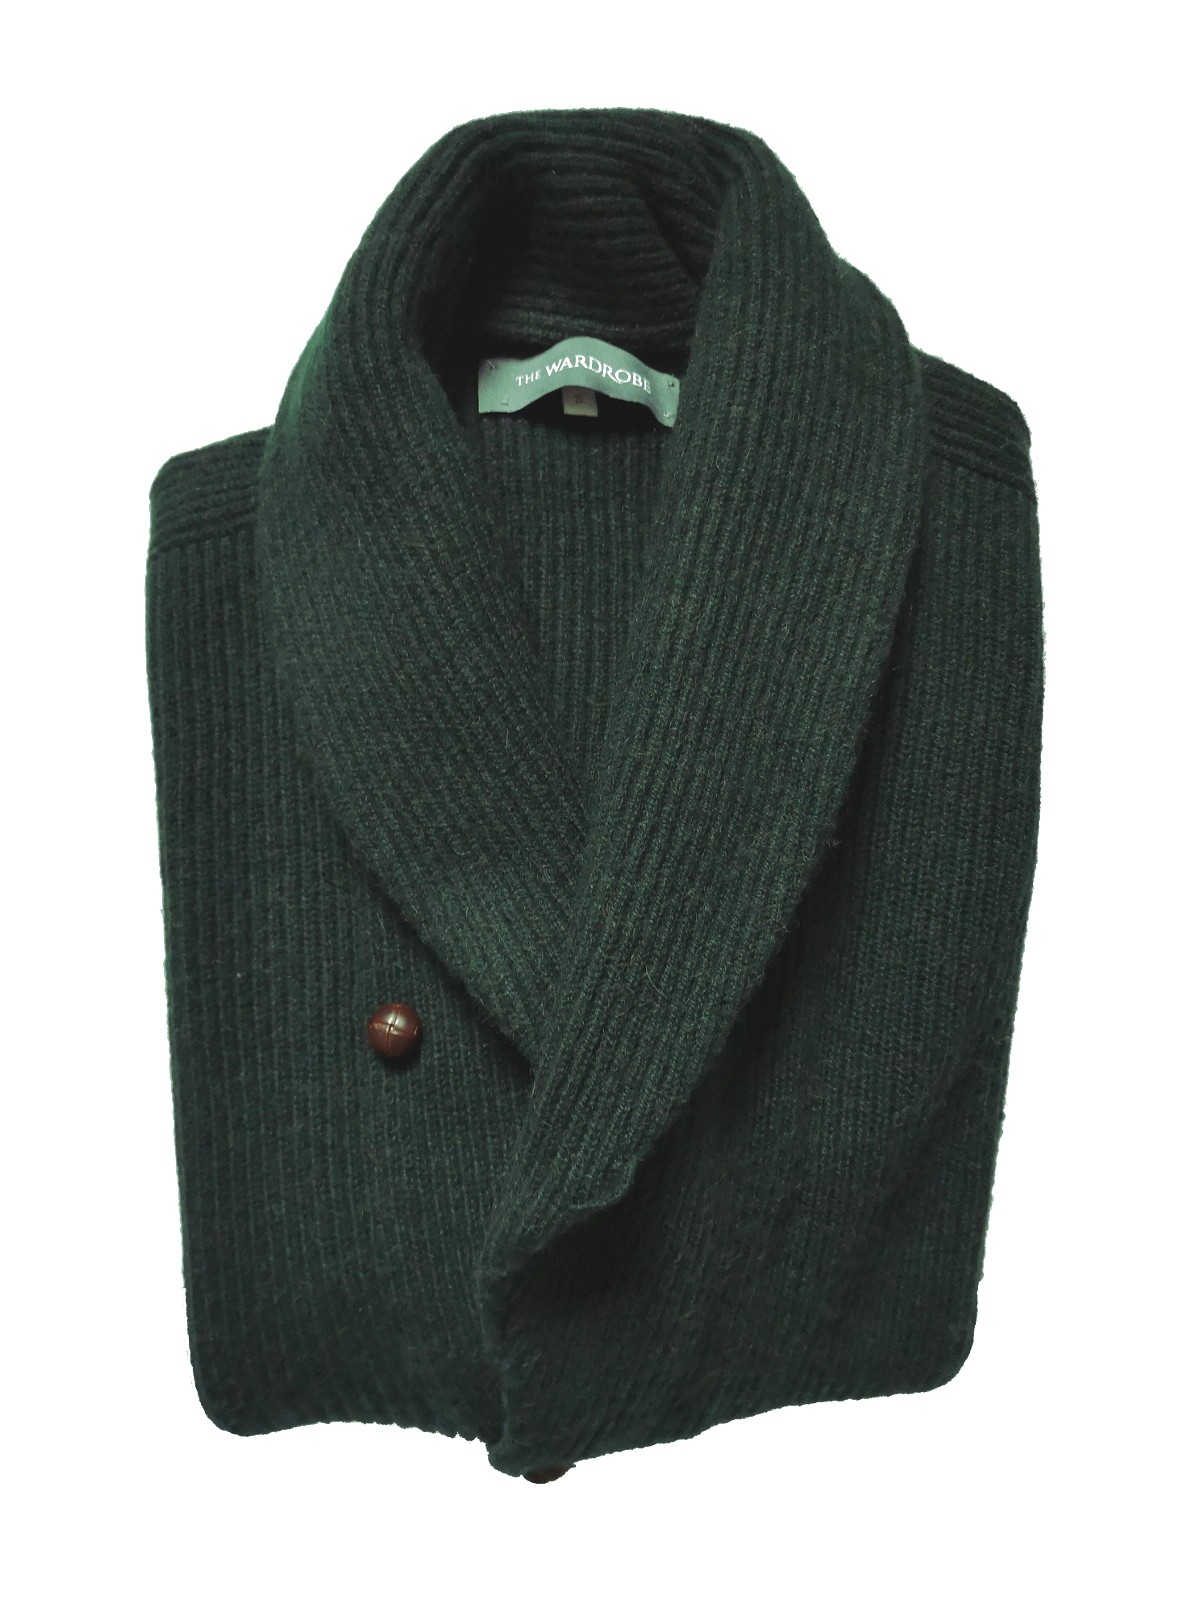 The Wardrobe Sweater Bottle Green